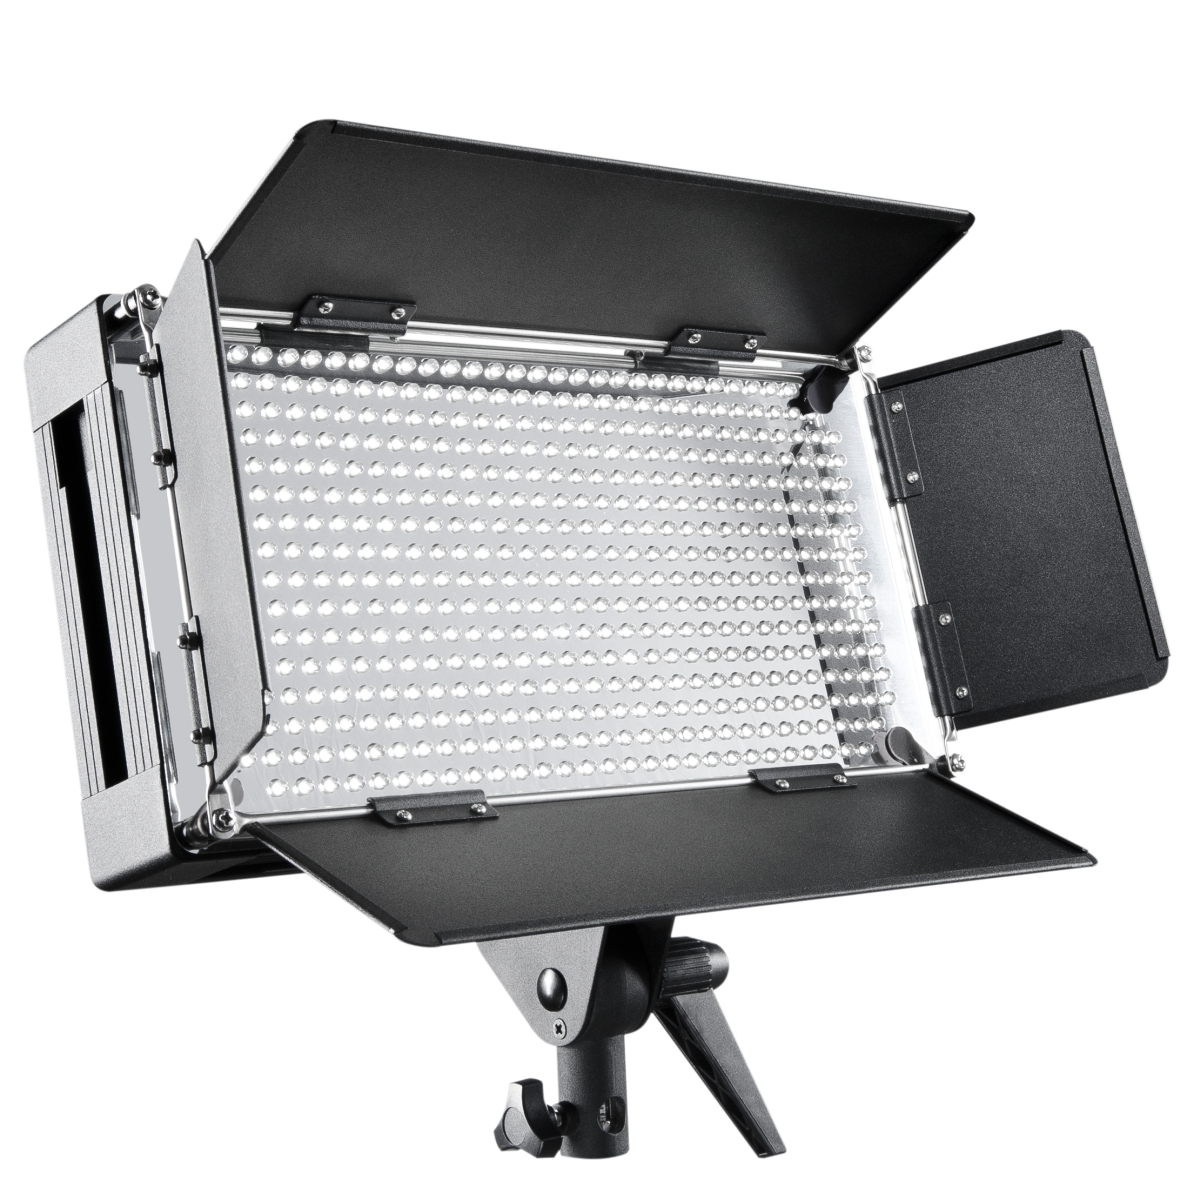 Walimex pro LED 500 Dimmable Panel Light